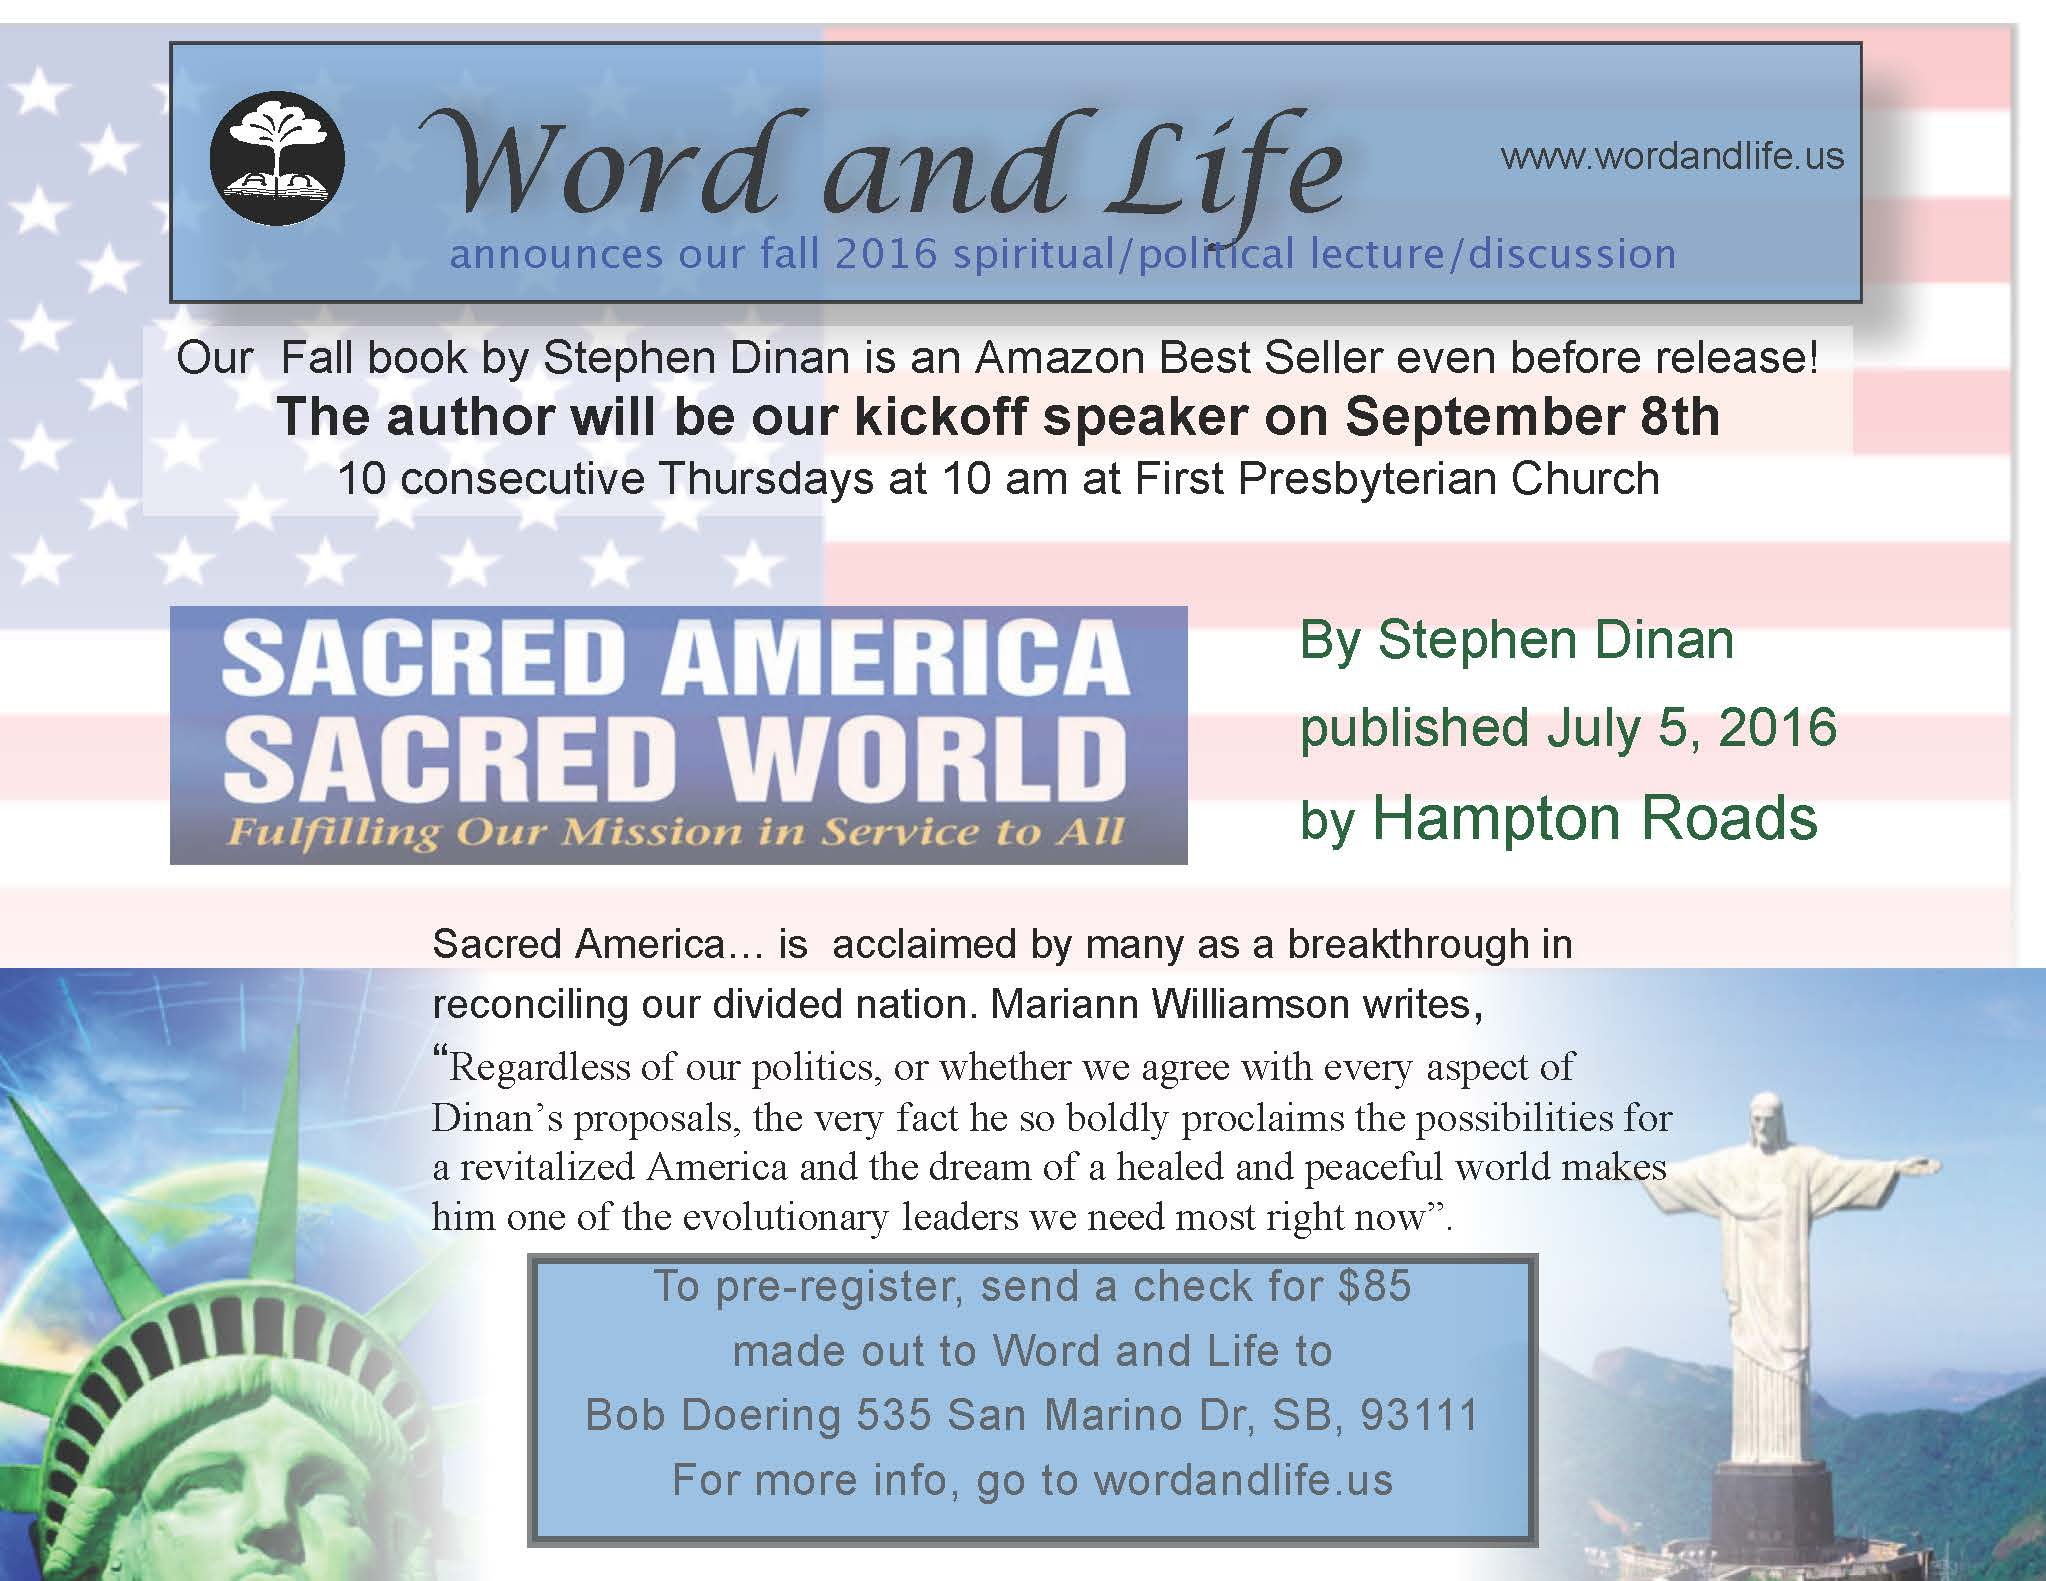 Flyer advertising Fall 2016 Word & Life program: a new book by Stephen Dinan